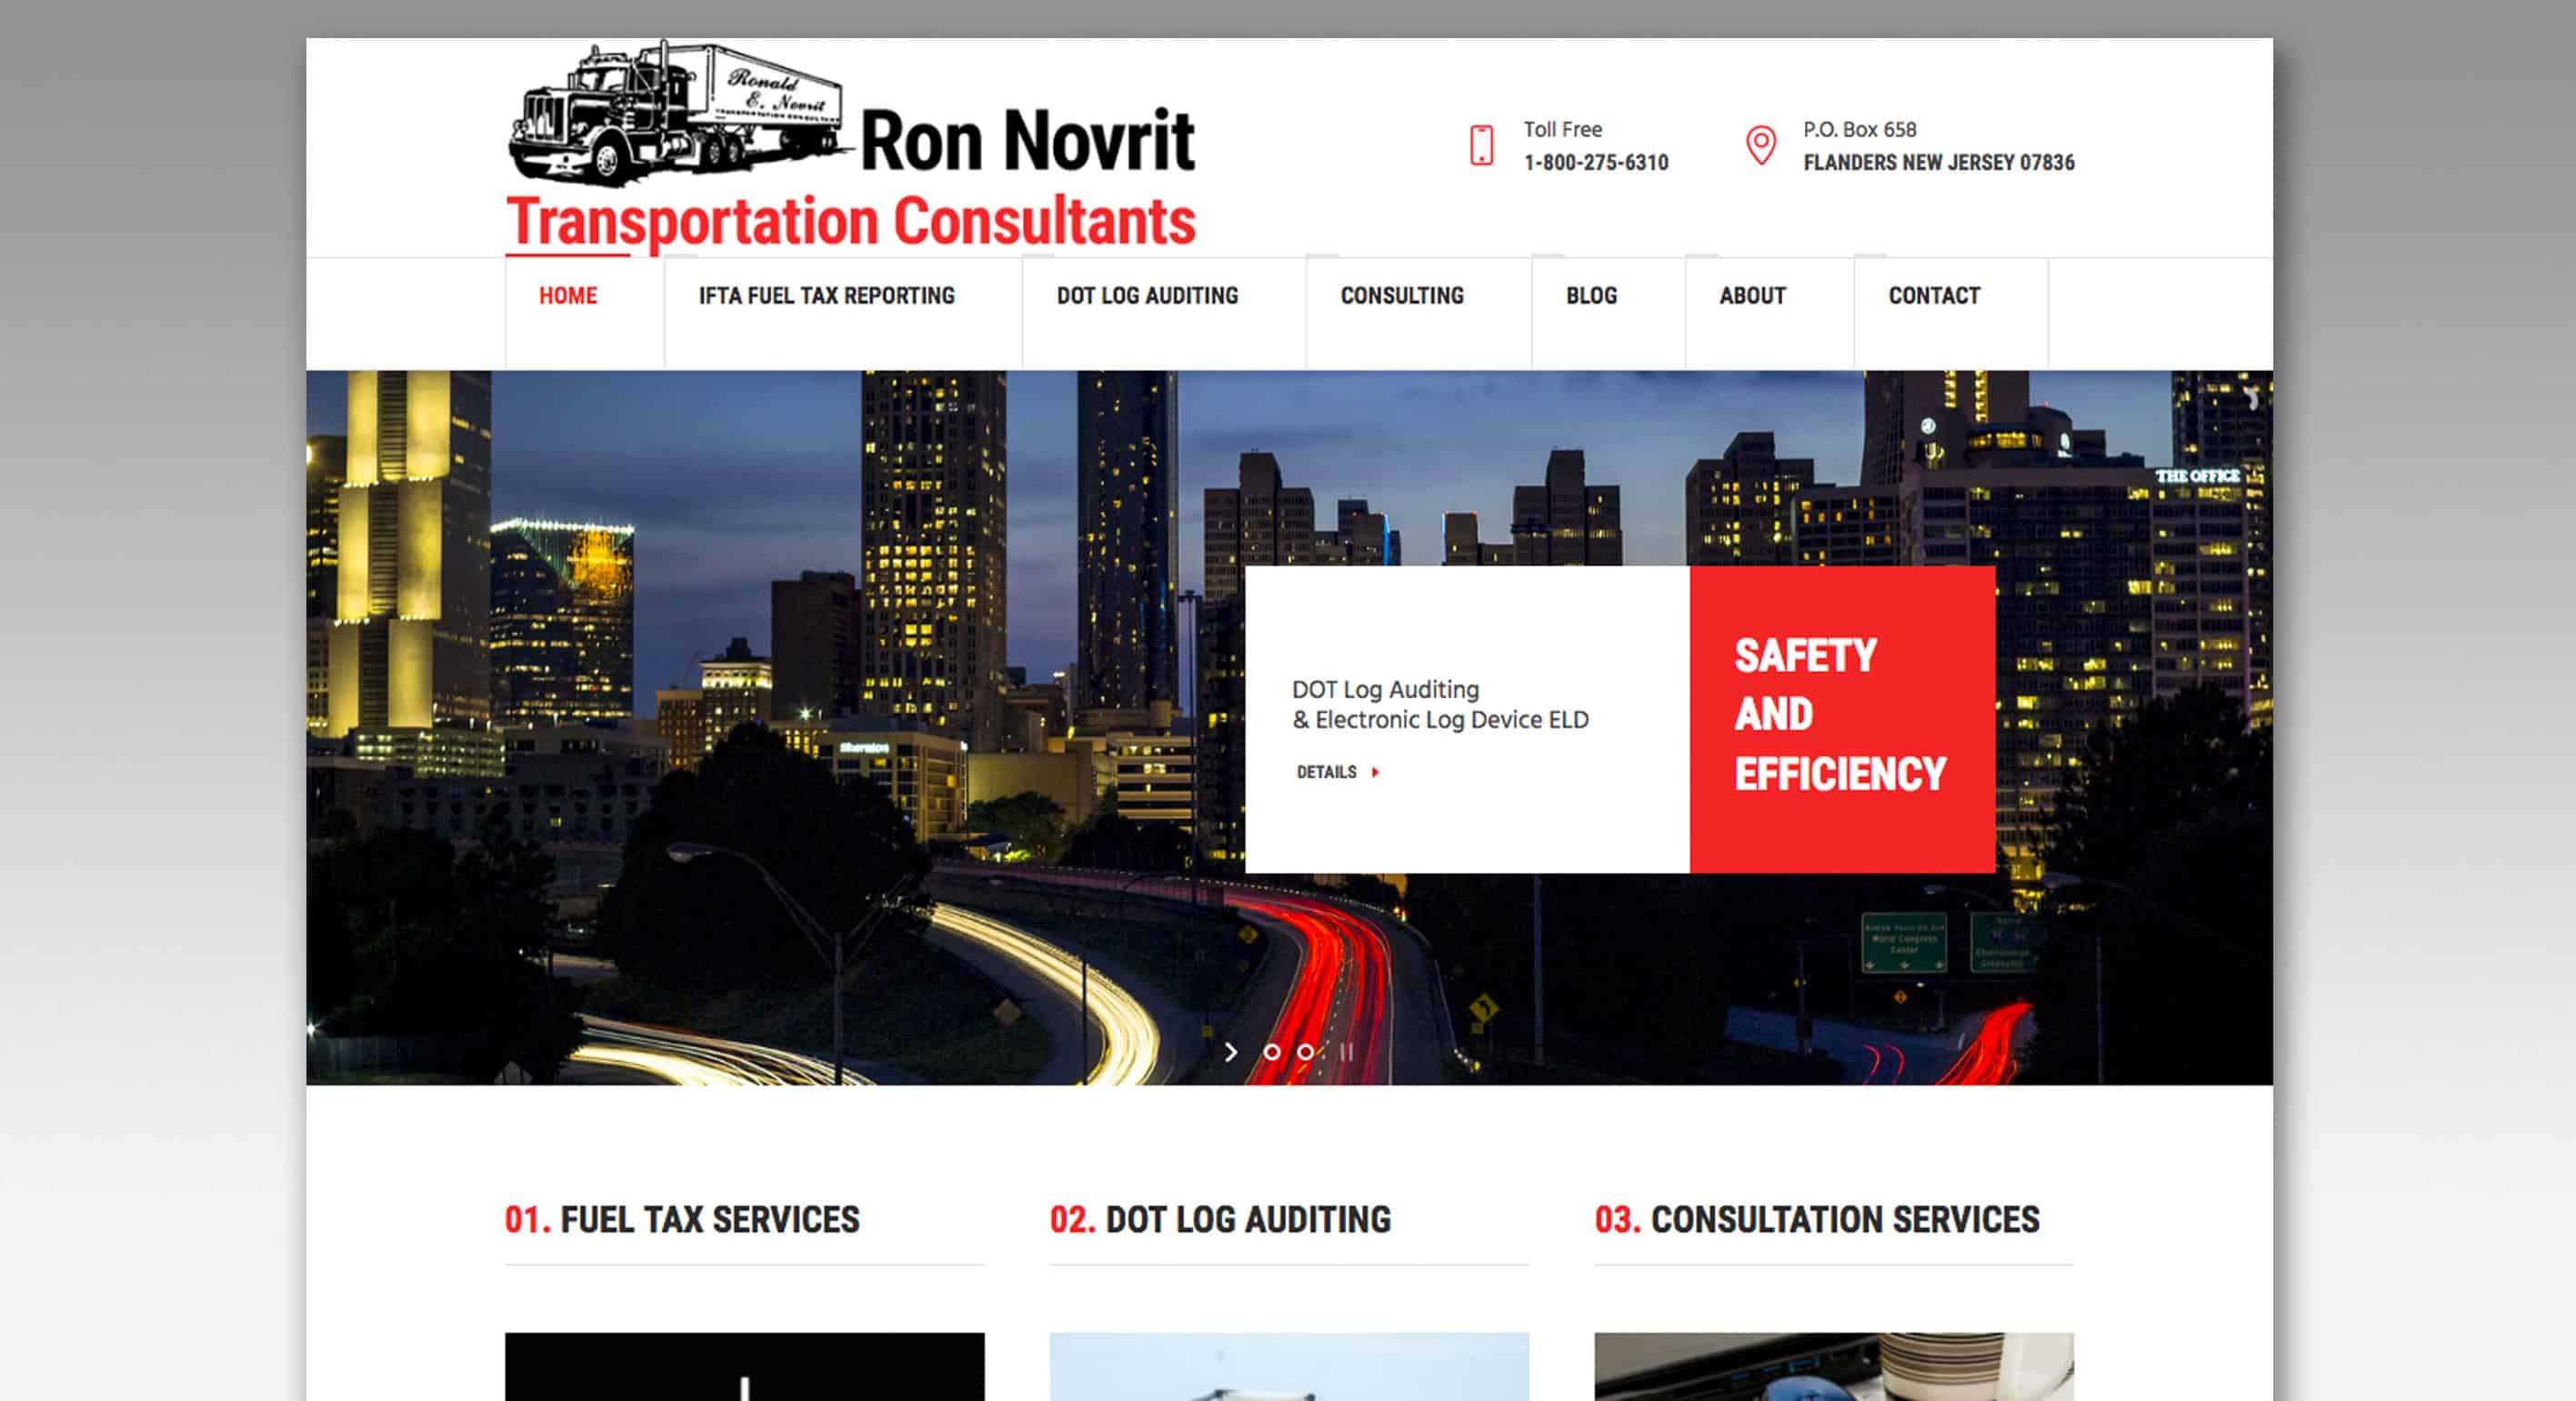 Ron Novrit Transportation Consultants